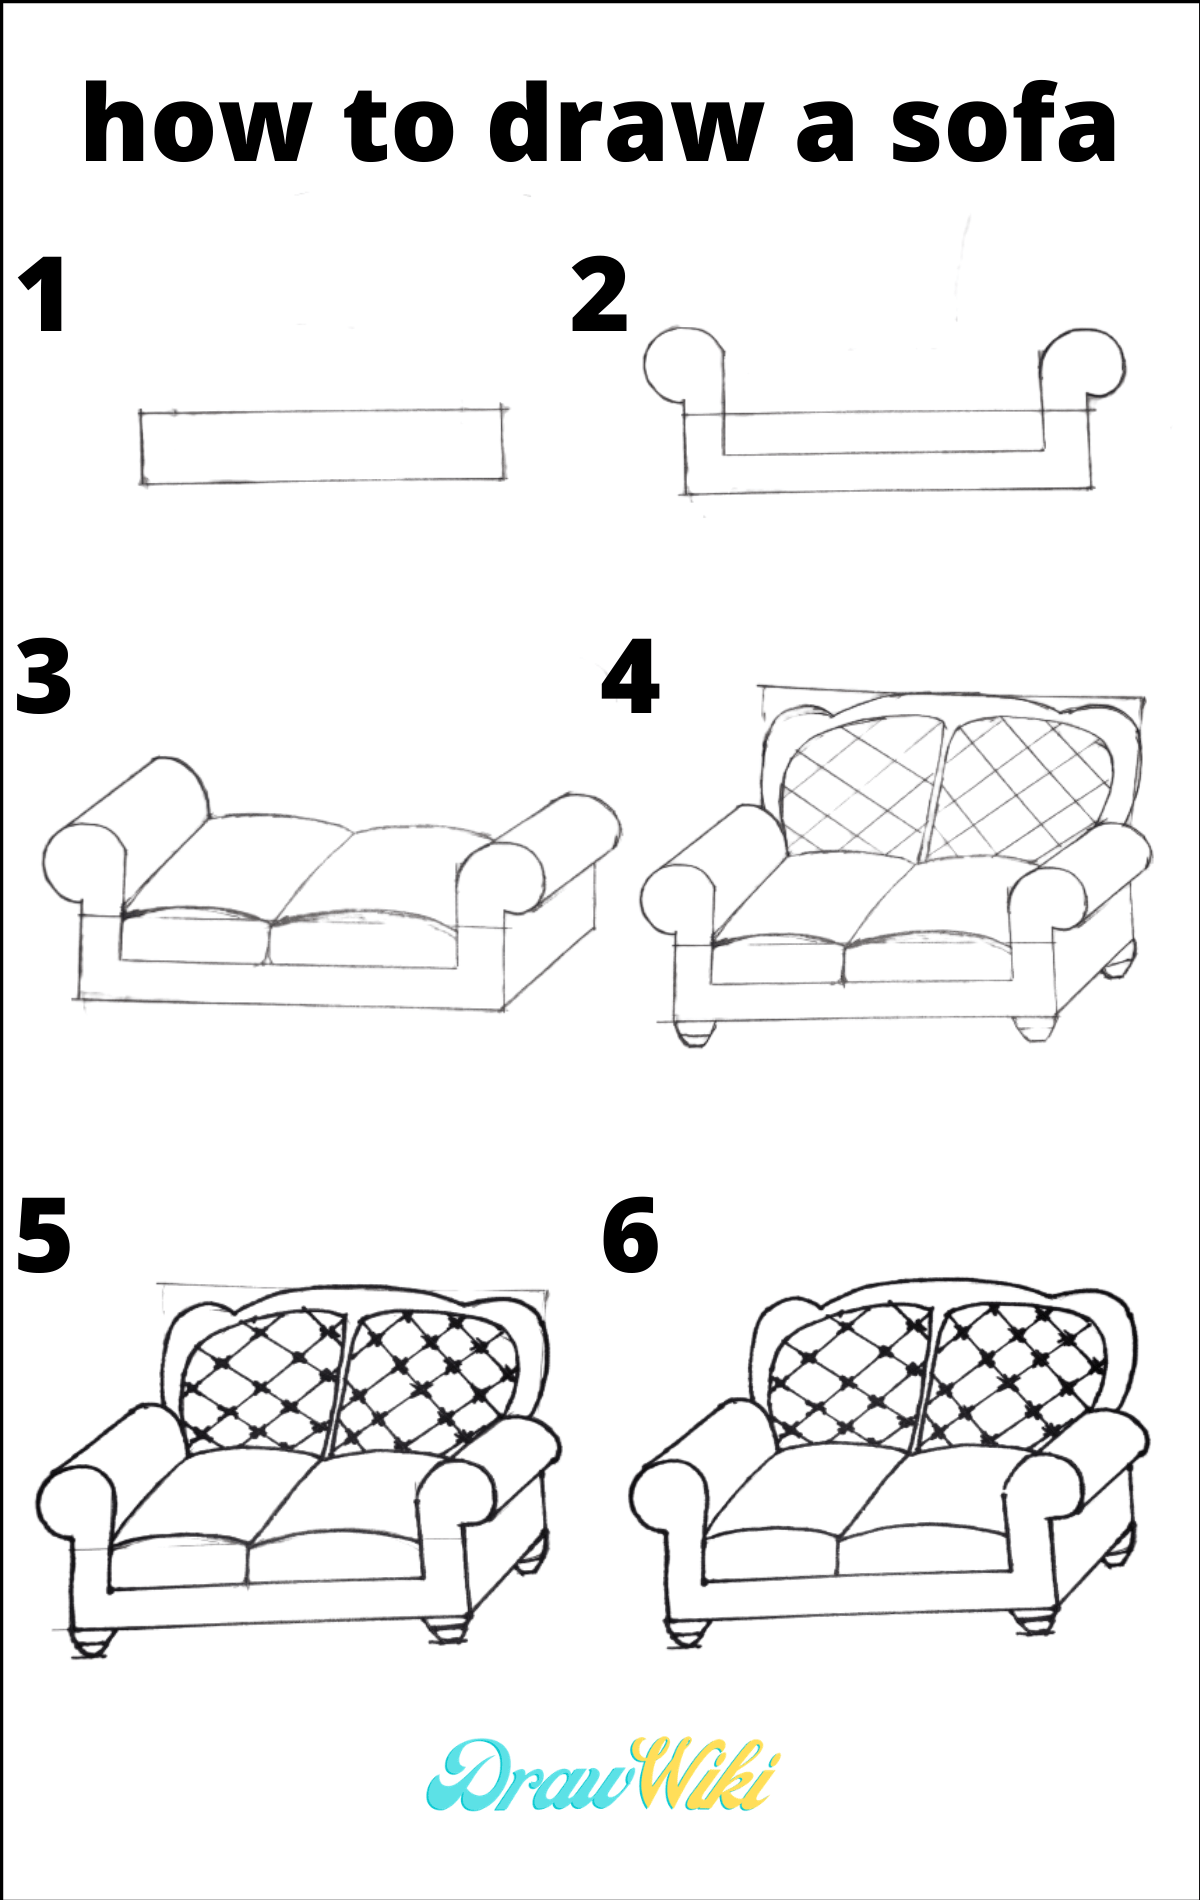 3rd Design Couch Drawing